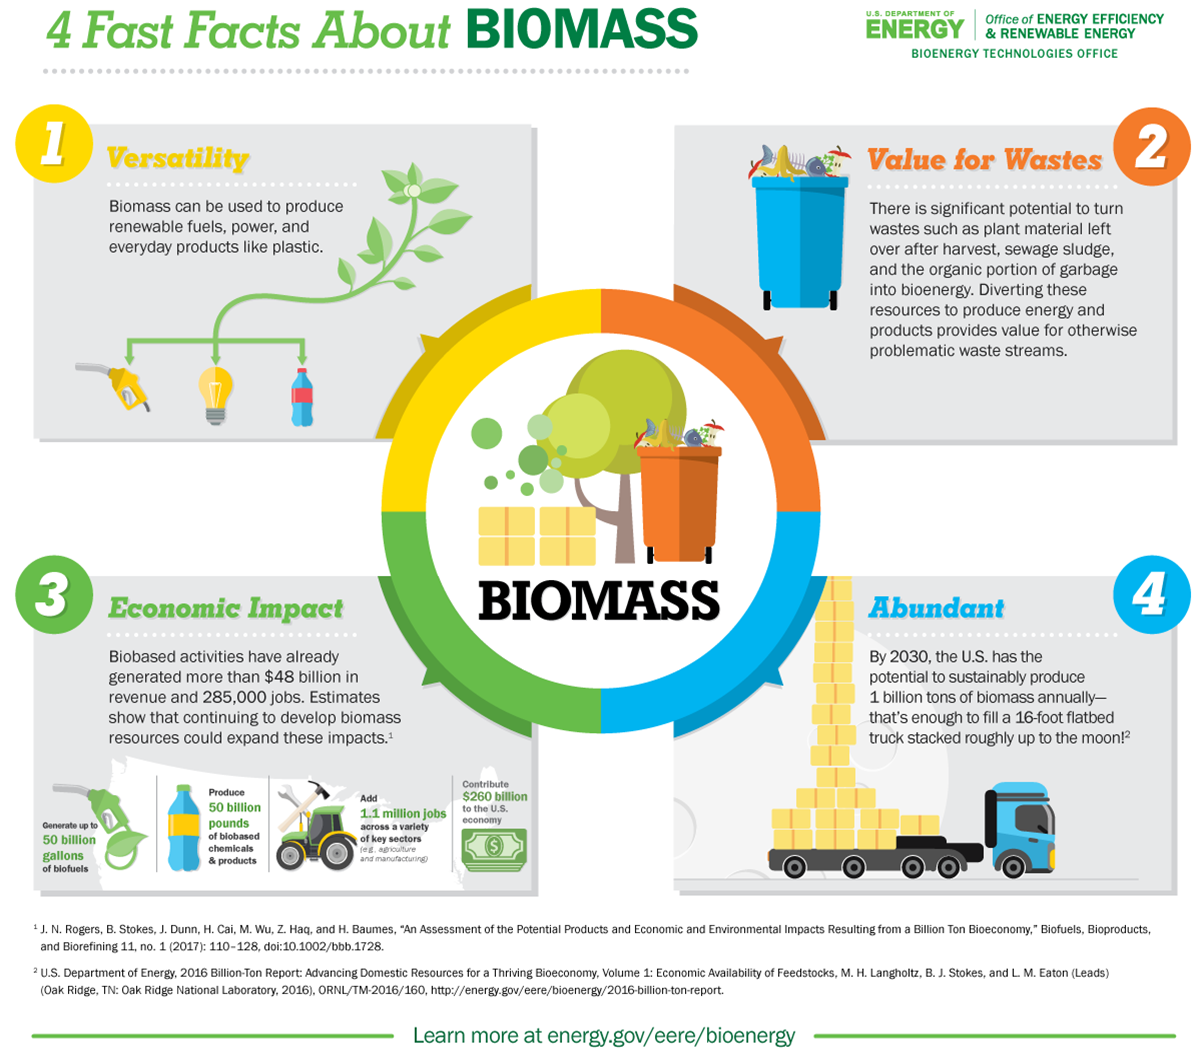 4 Fast Facts About Biomass